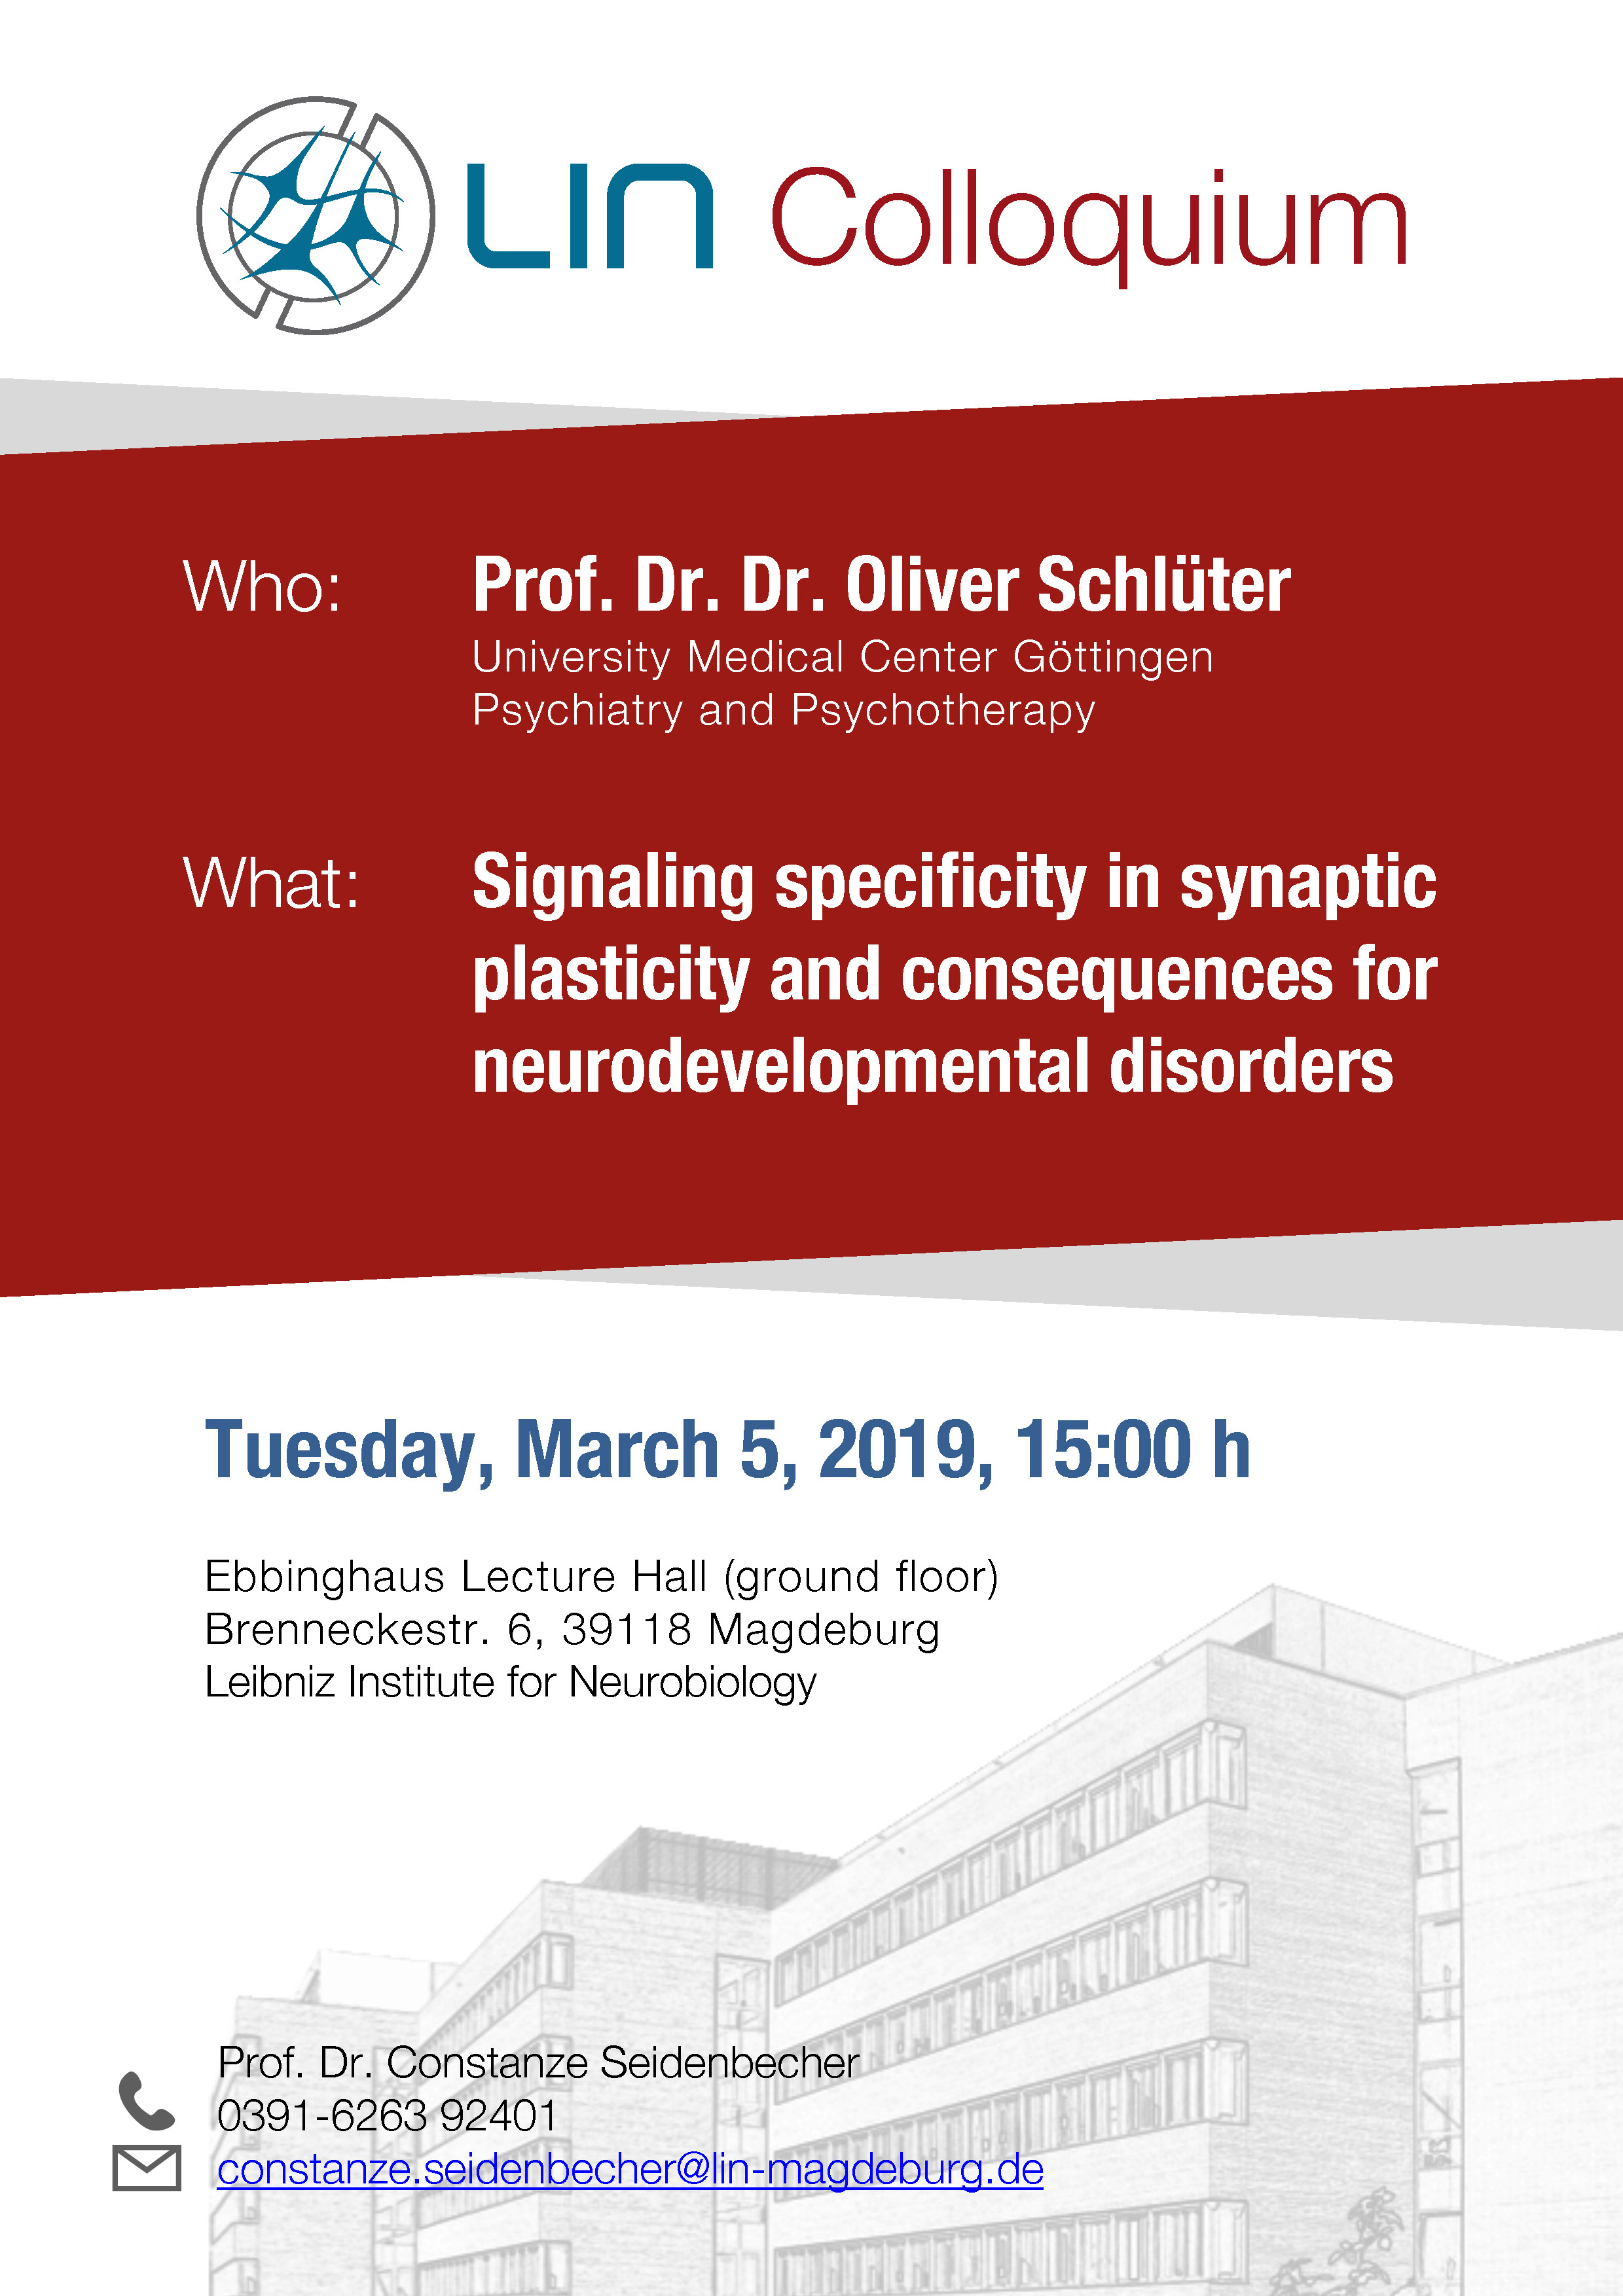 LIN Colloquium: Signaling specificity in synaptic plasticity and consequences for neurodevelopmental disorders @ Ebbinghaus Lecture Hall, Leibniz Institute for Neurobiology